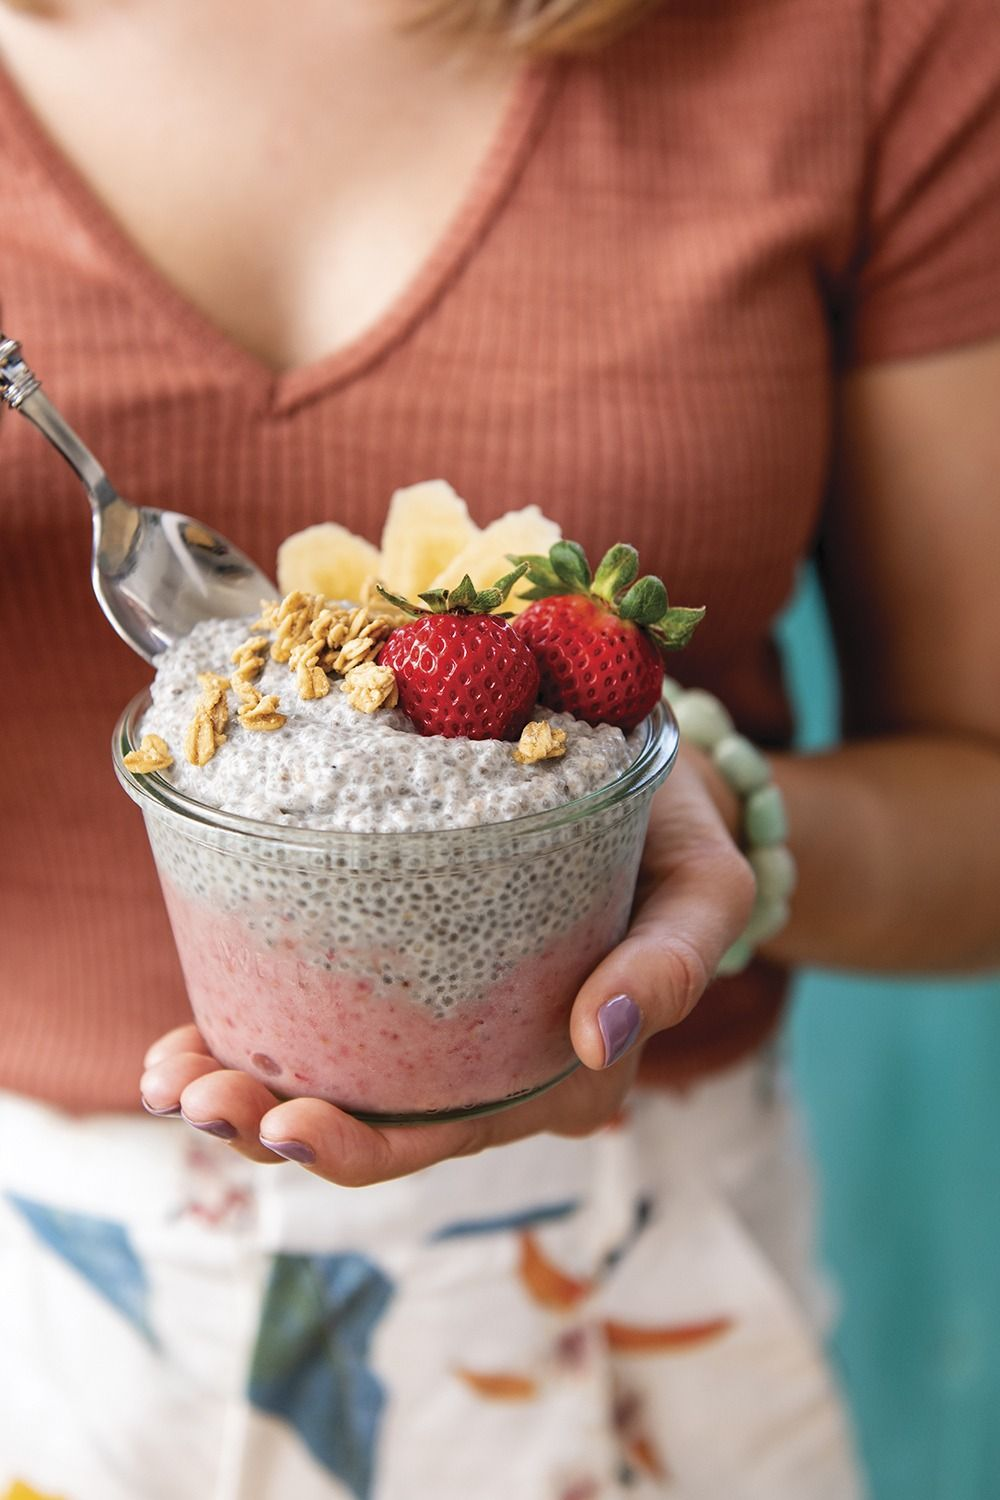 Energize your day with The HealthNut Cookbook by Nikole